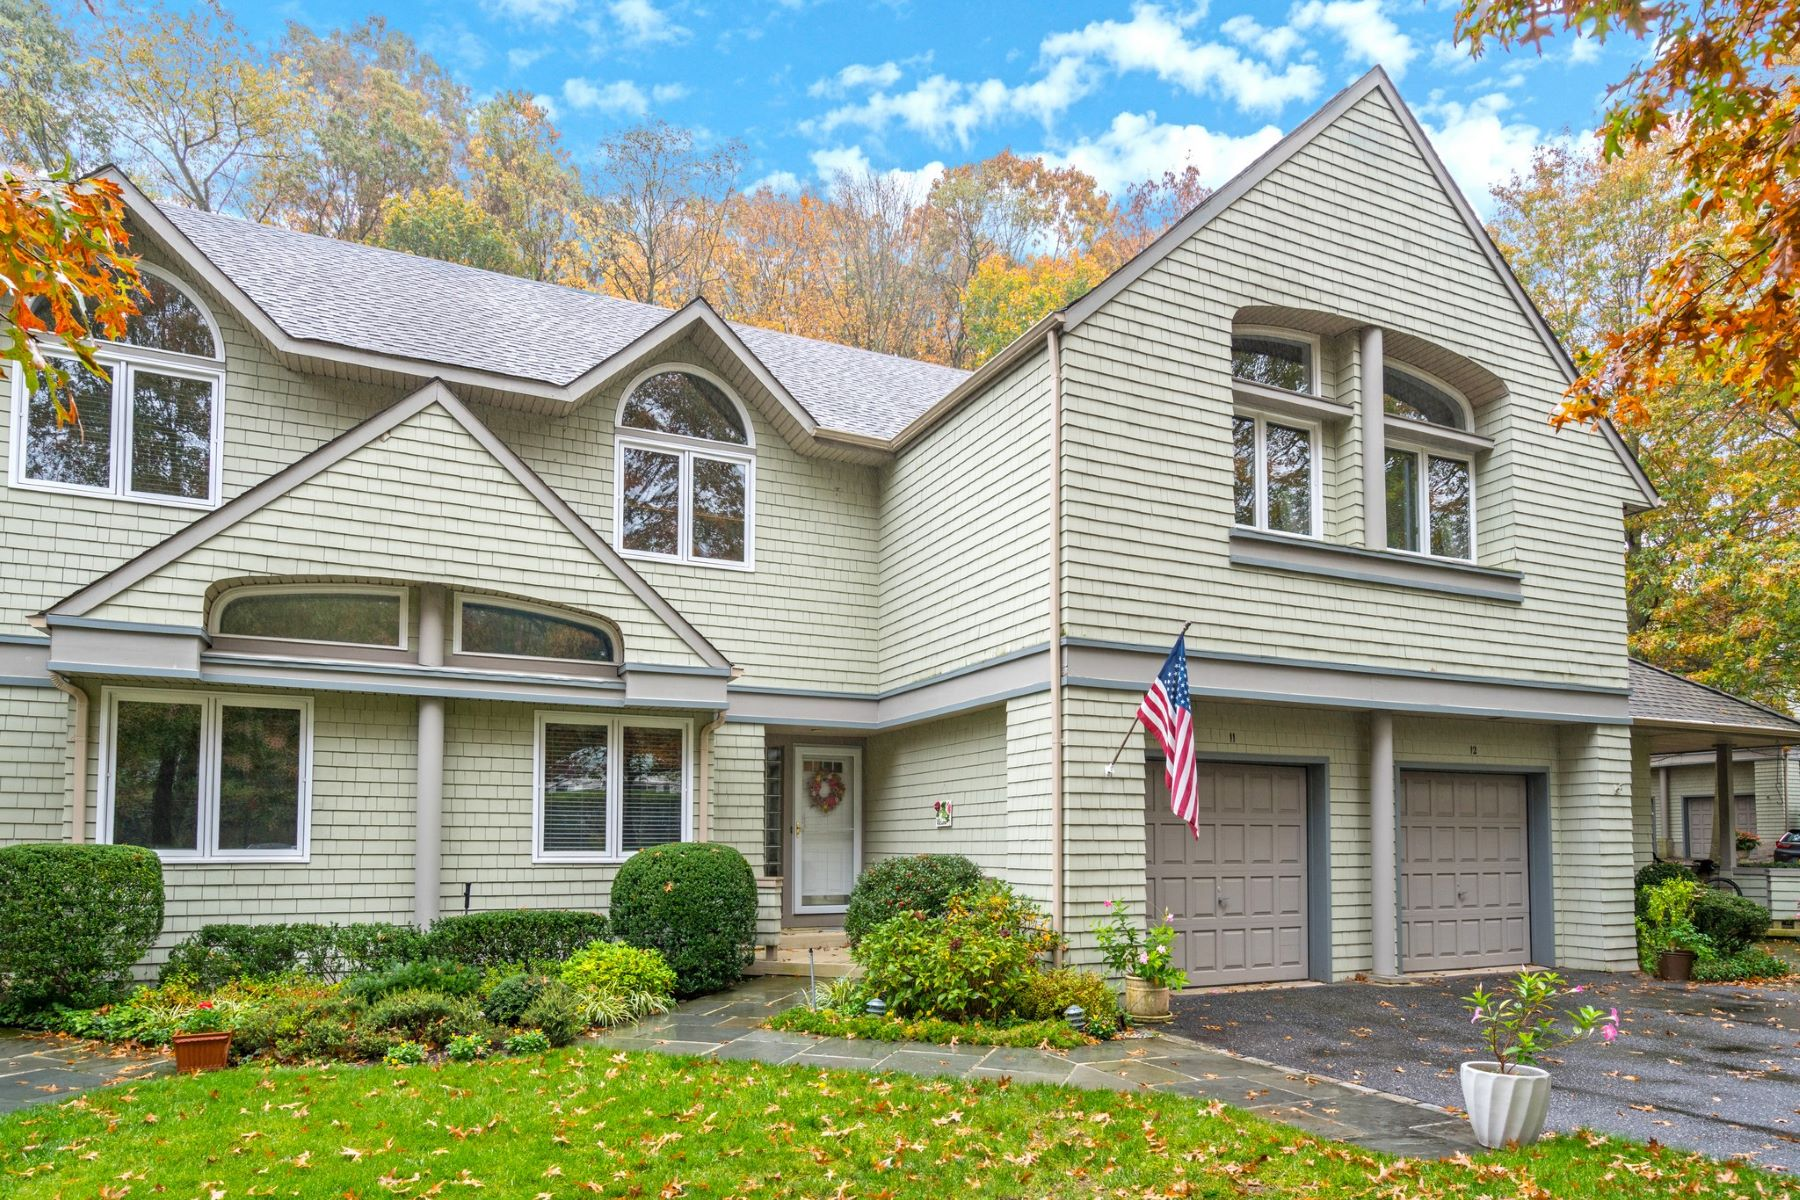 Single Family Homes for Active at Huntington 11 Insbrook Huntington, New York 11743 United States